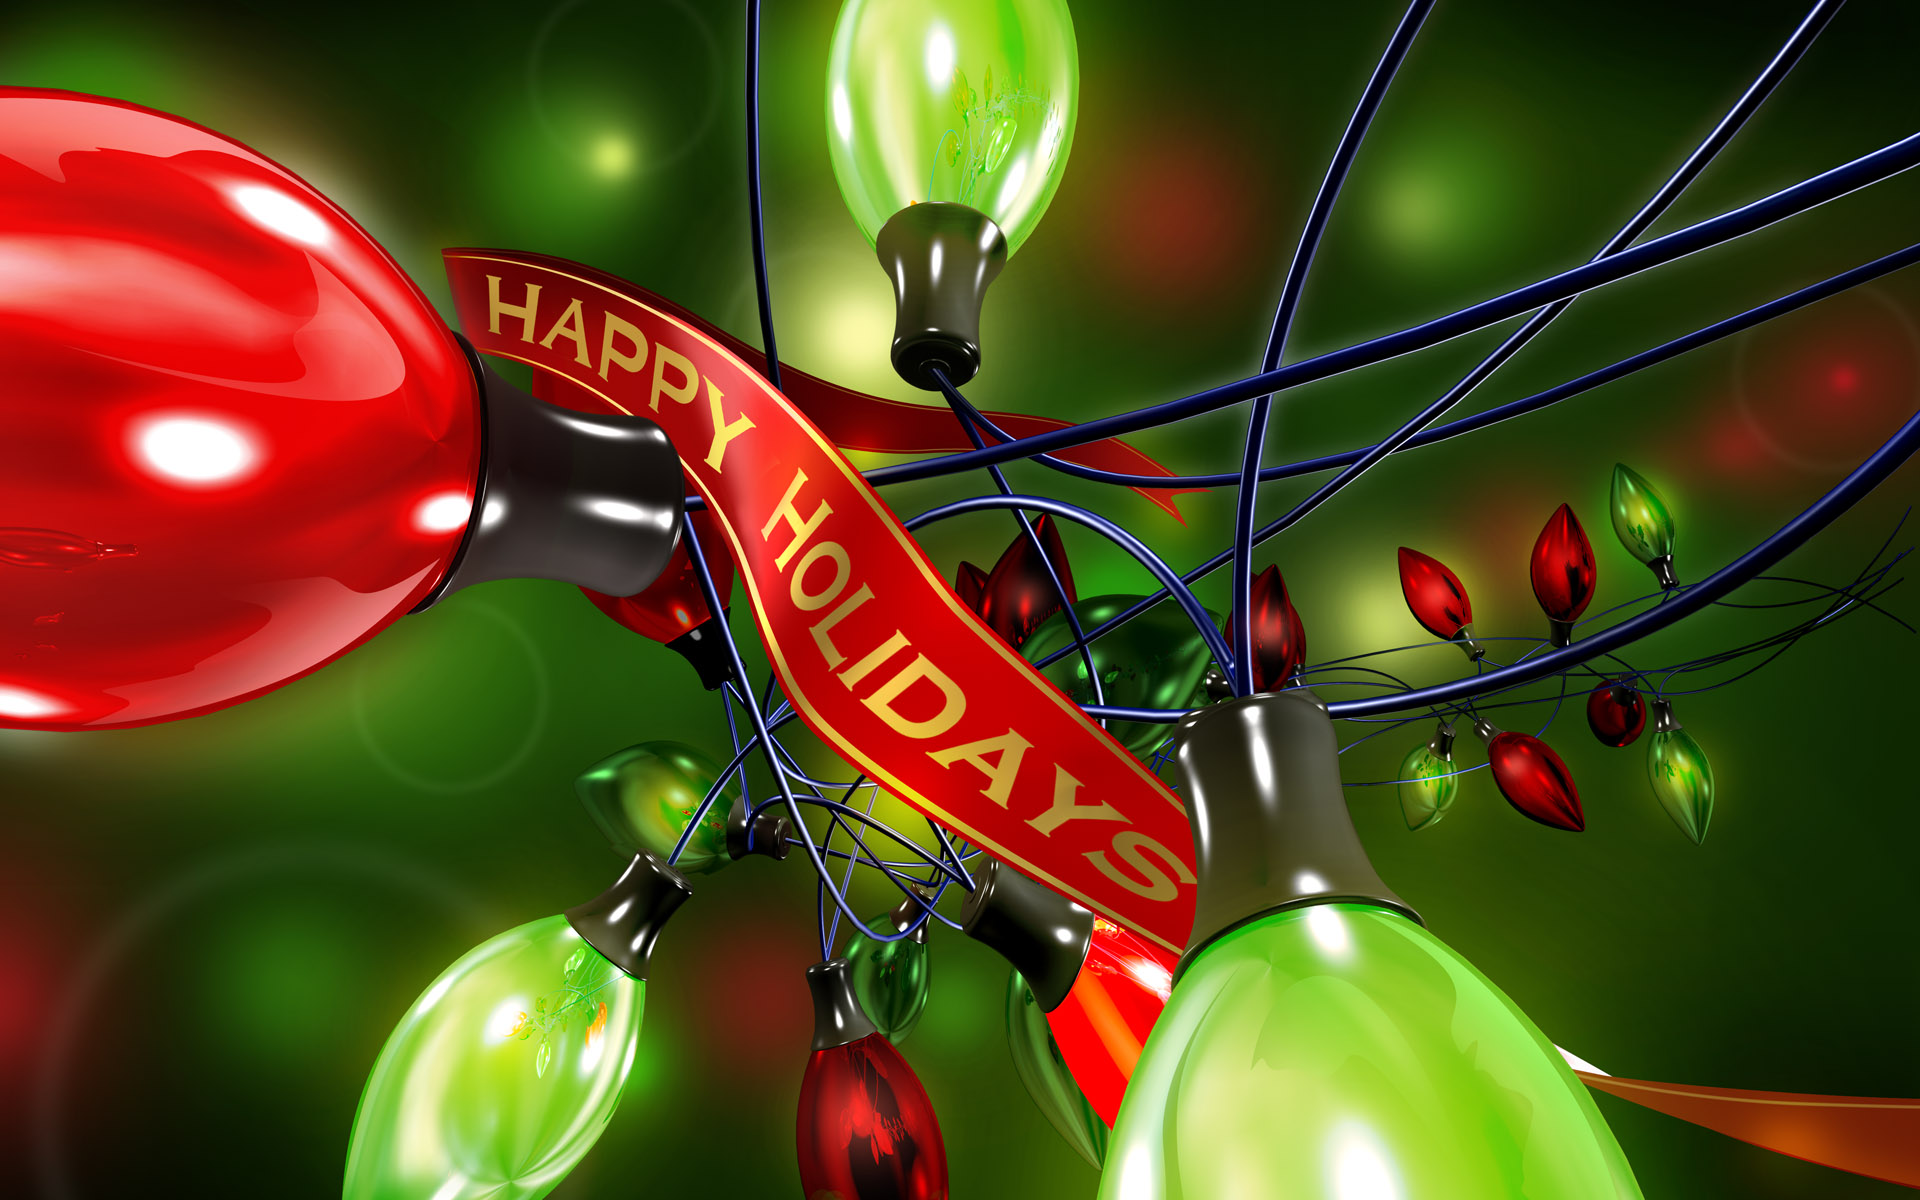 Happy Holidays 4214786 1920x1200 All For Desktop 1920x1200